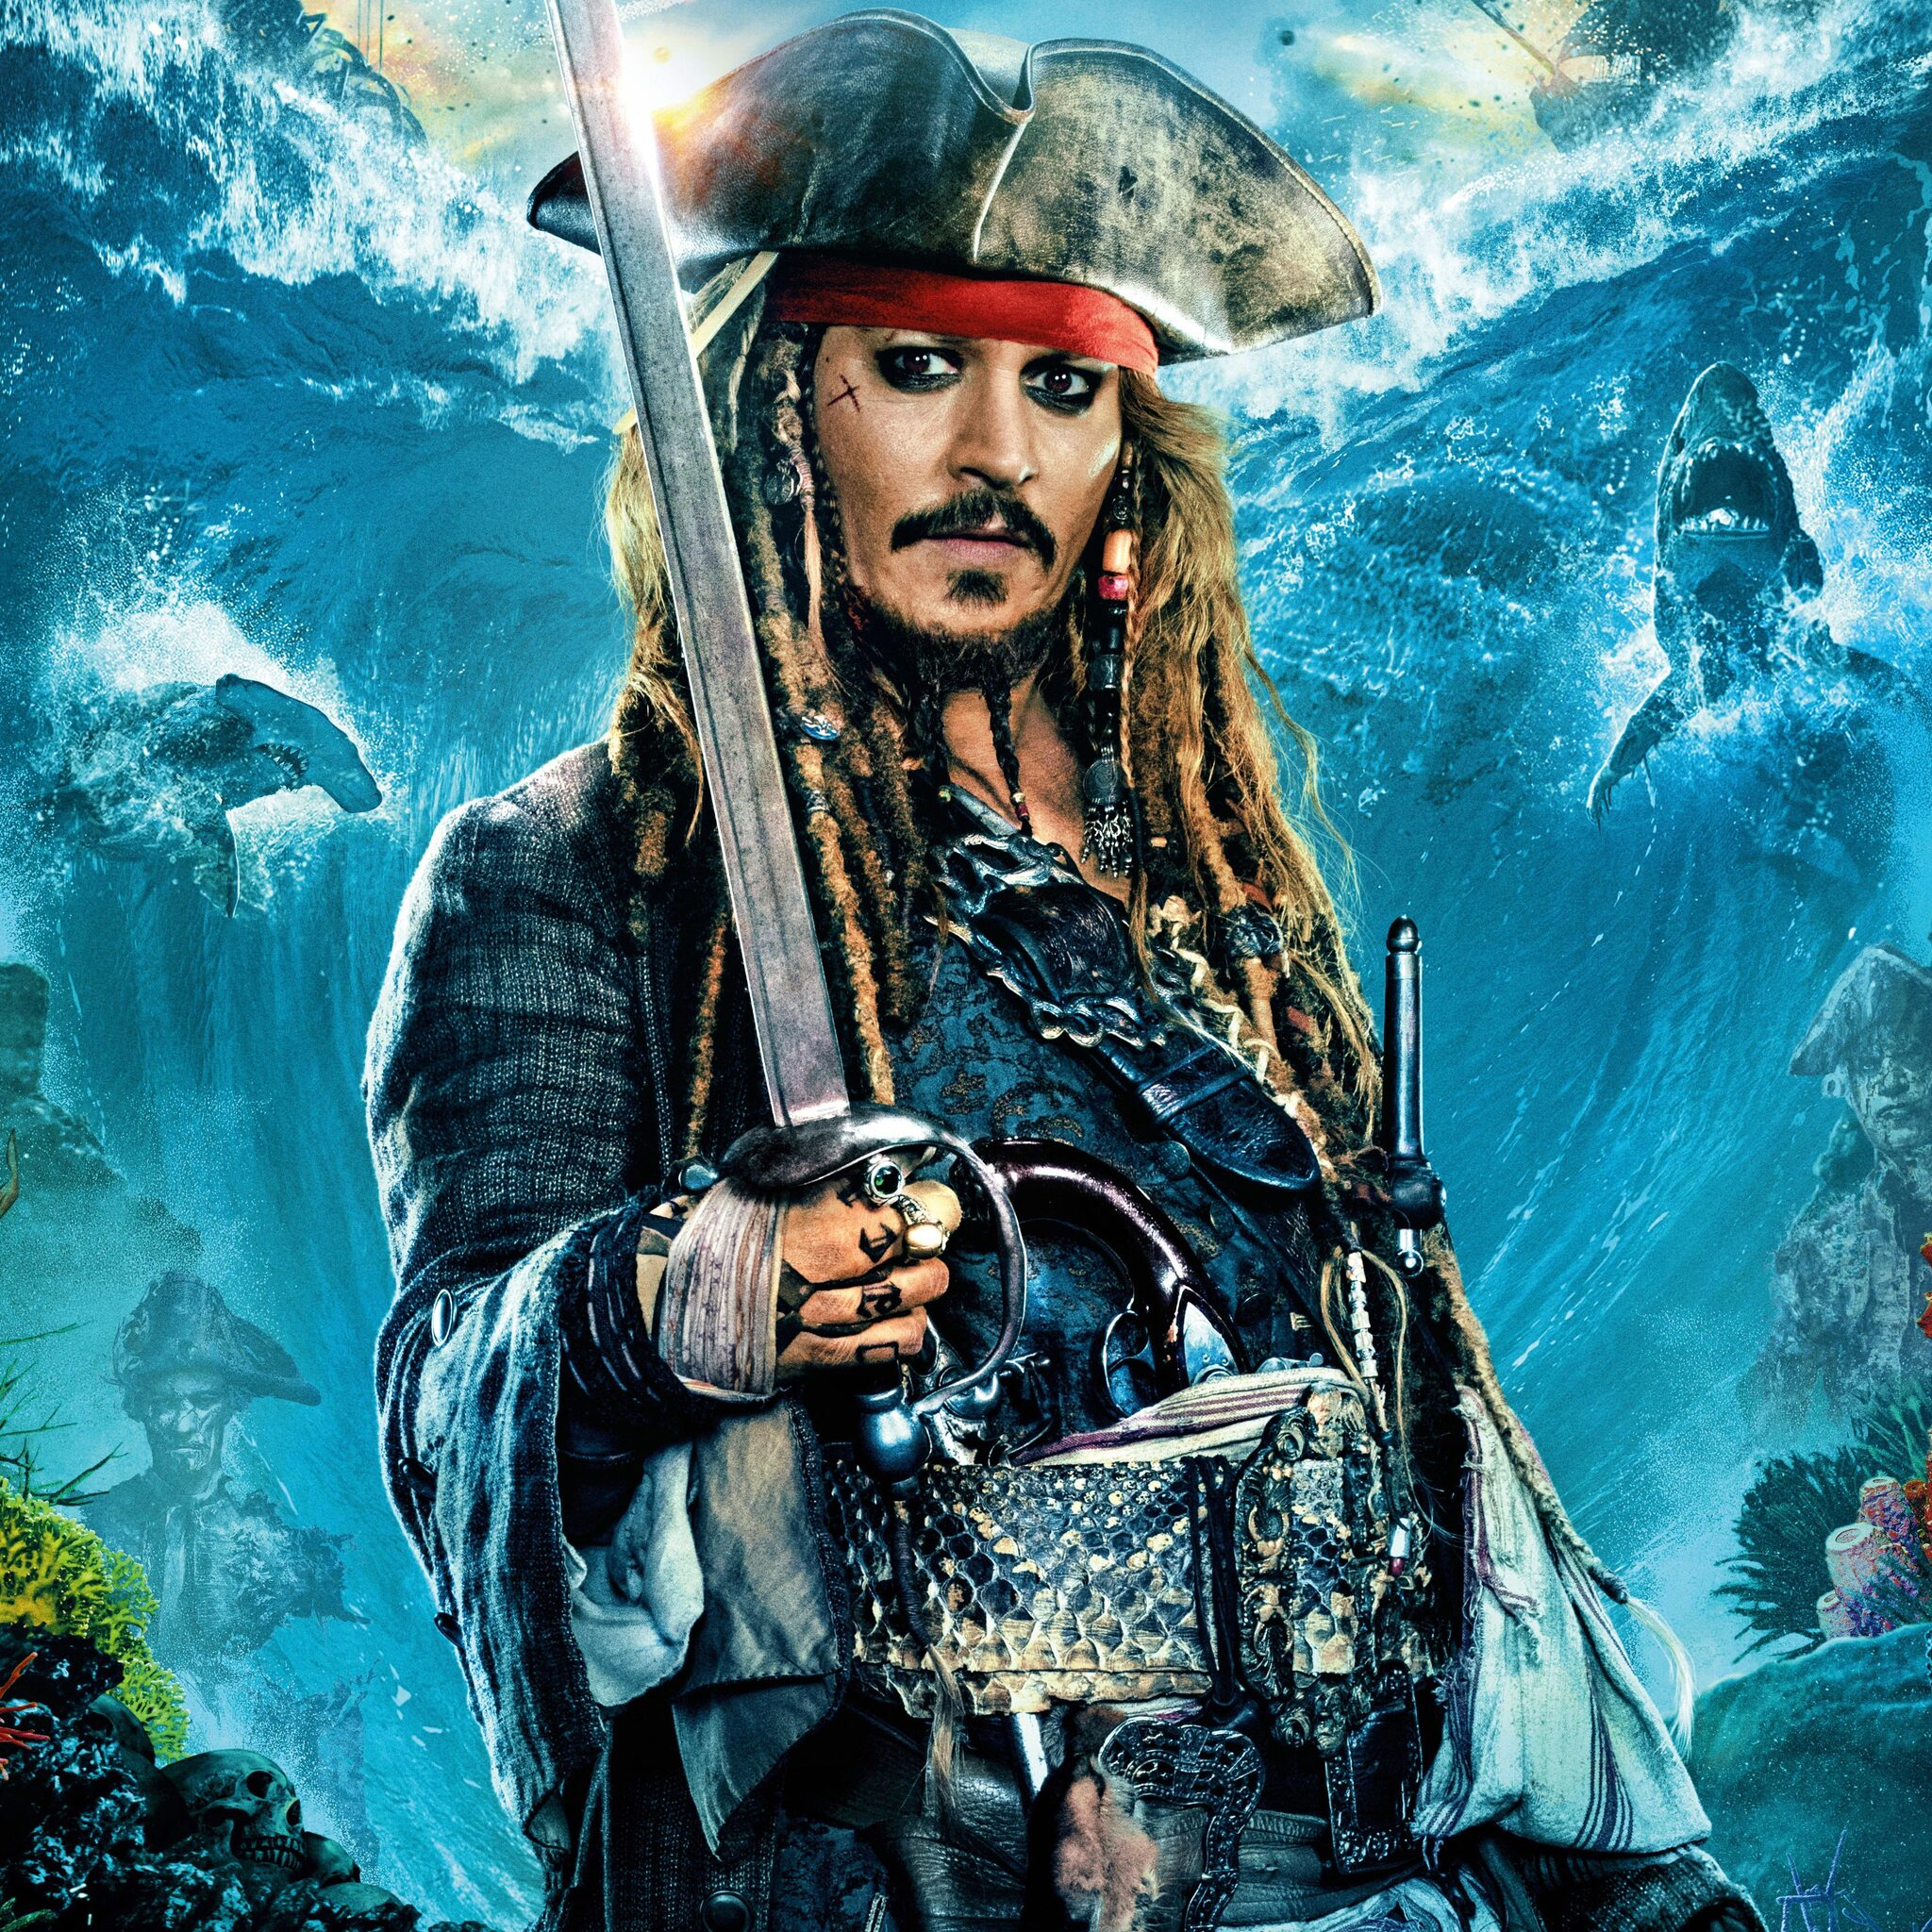 2048x2048 jack sparrow in pirates of the caribbean dead men tell no tales ipad air hd 4k - Pirates of the caribbean images hd ...